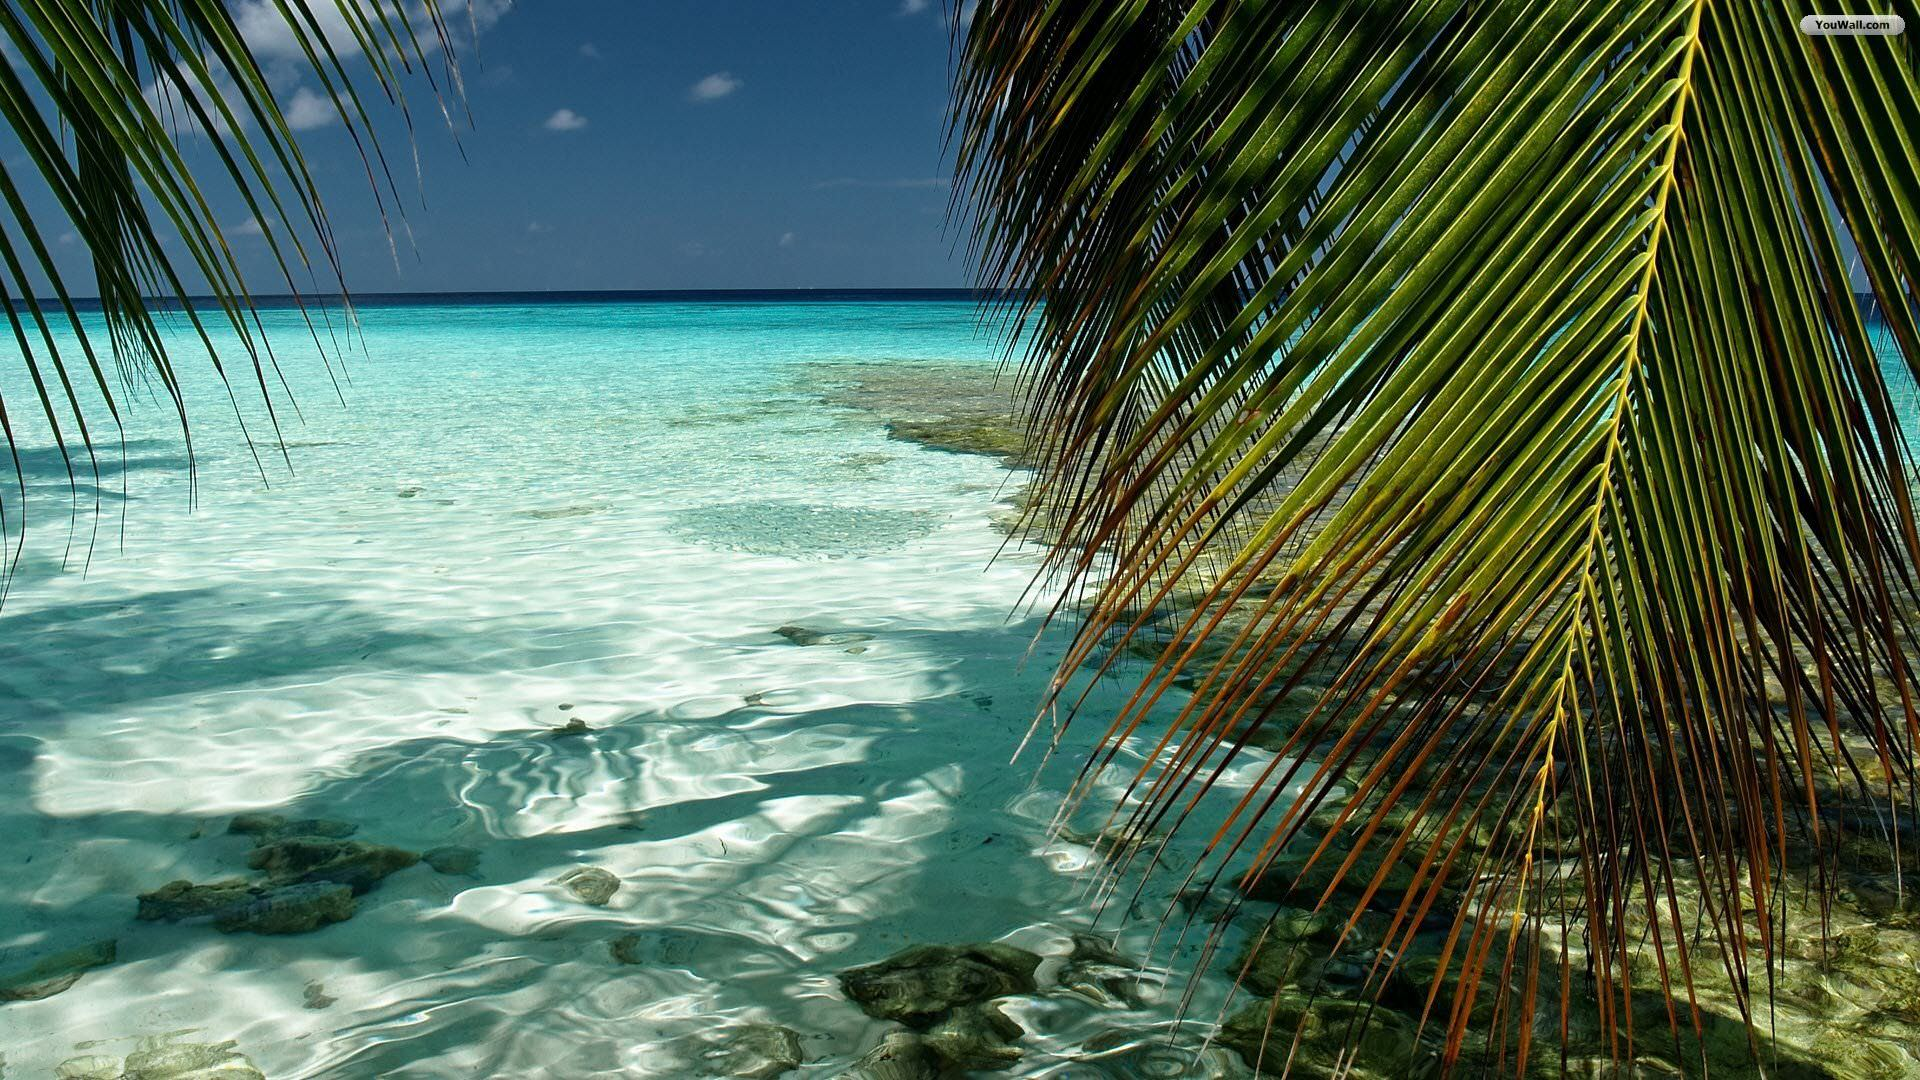 28 Tropical Beach Backgrounds Wallpapers Images 1920x1080